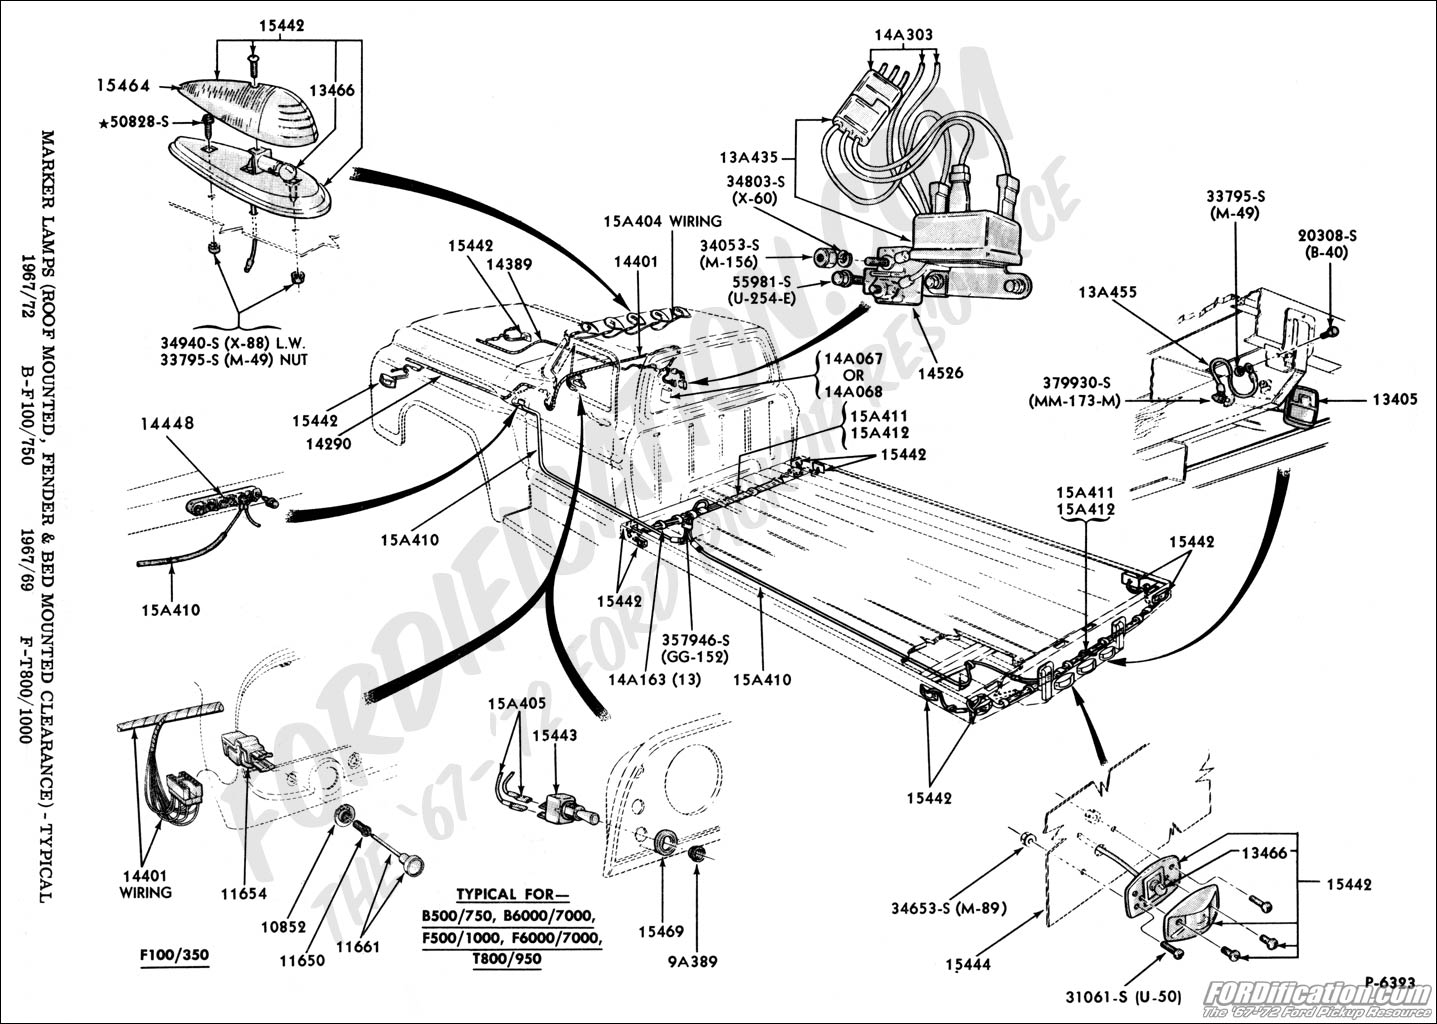 Schematics i 67 ford f100 wiring diagram at ww11 freeautoresponder co